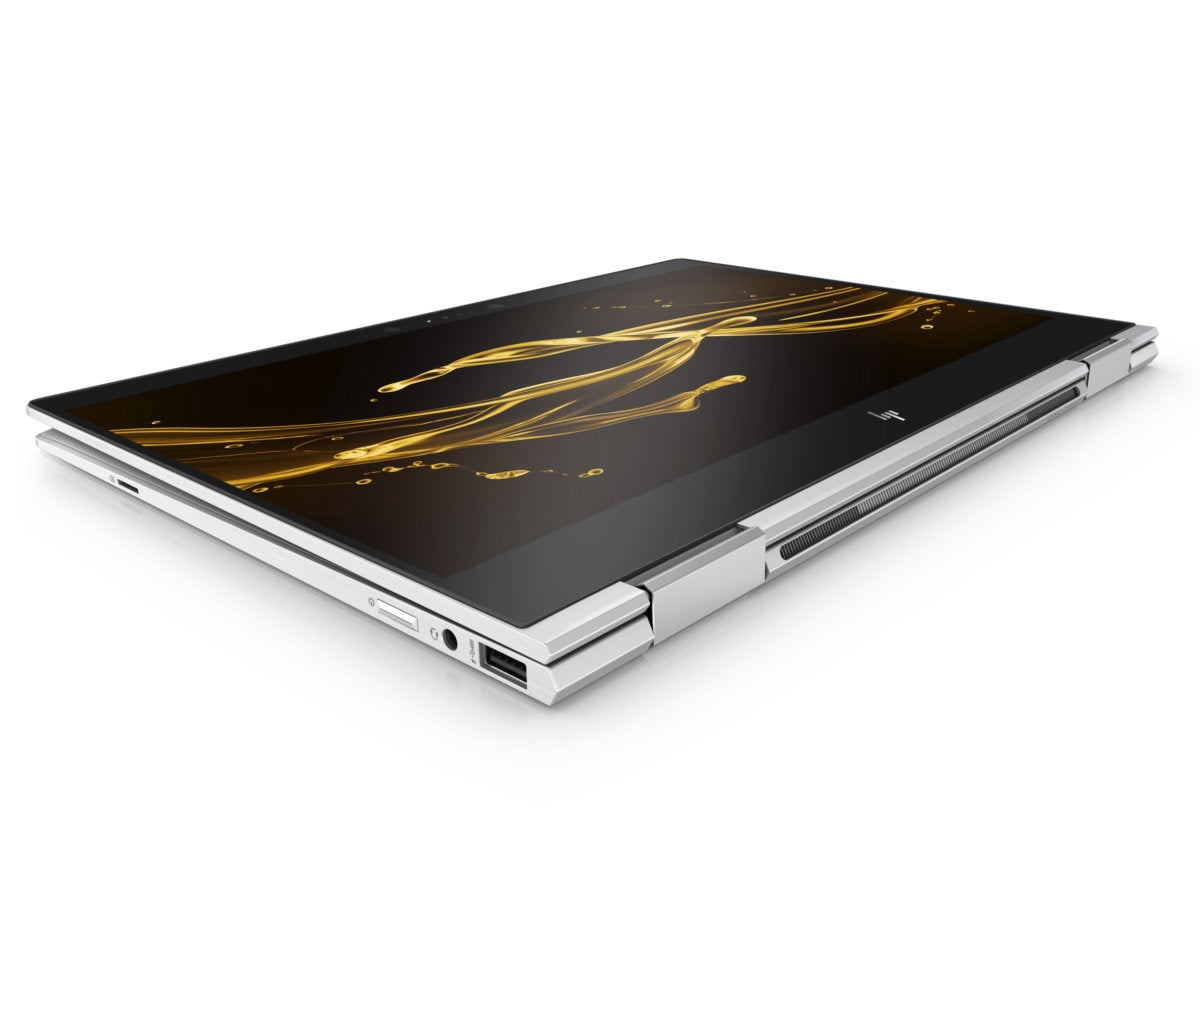 hp spectre x360 13 natural silver tablet